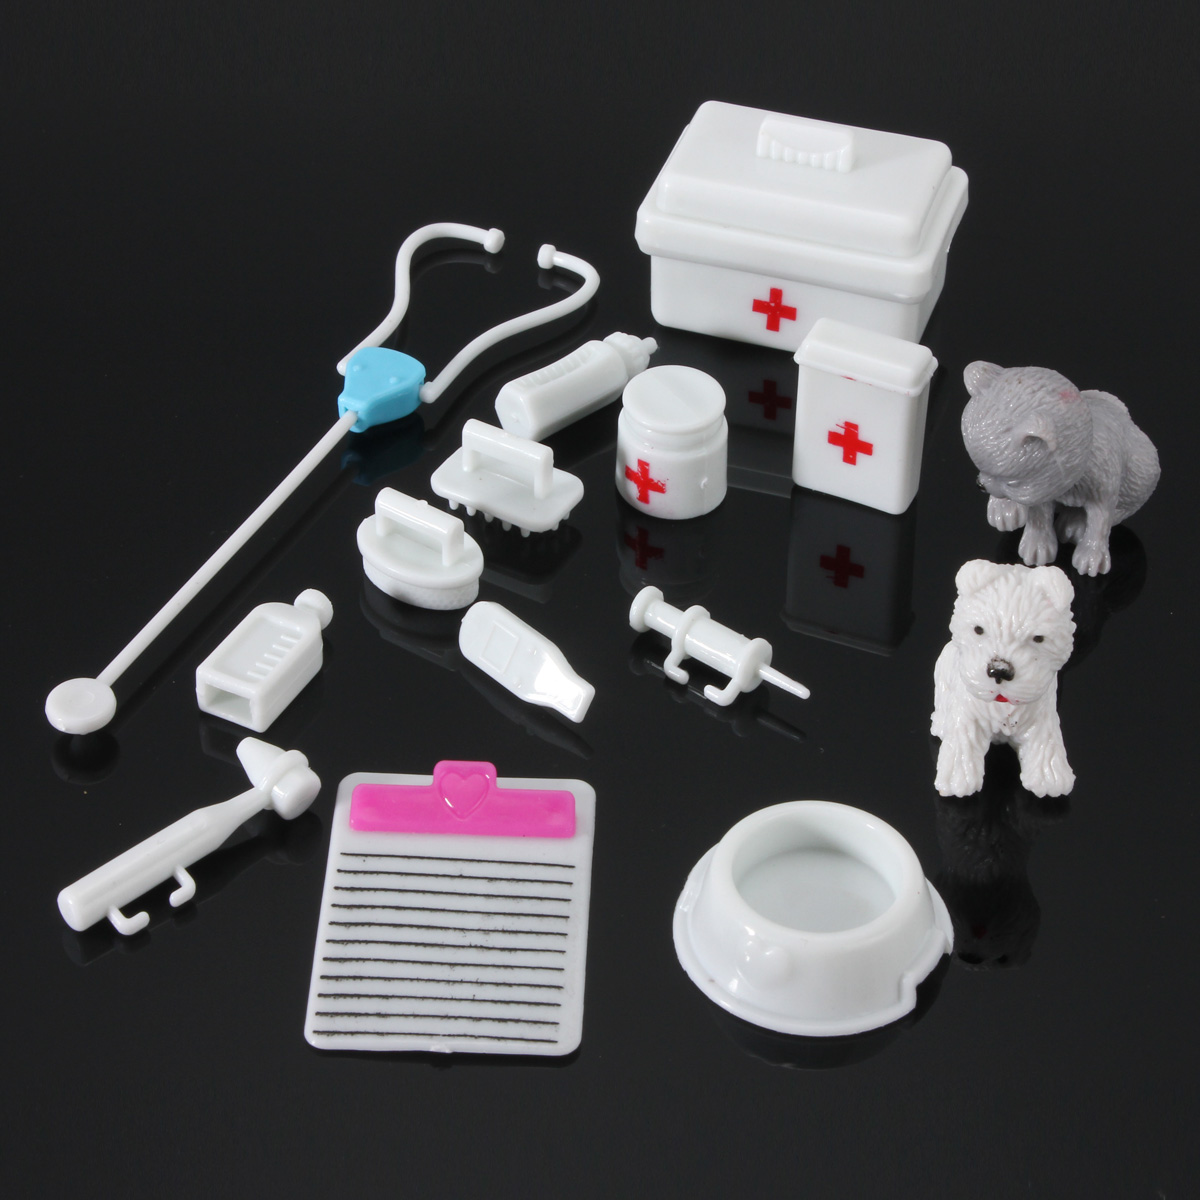 14Pcs Mini Medical Equipment Toys For Barbie Fashion Doll House Accessories Set Gift